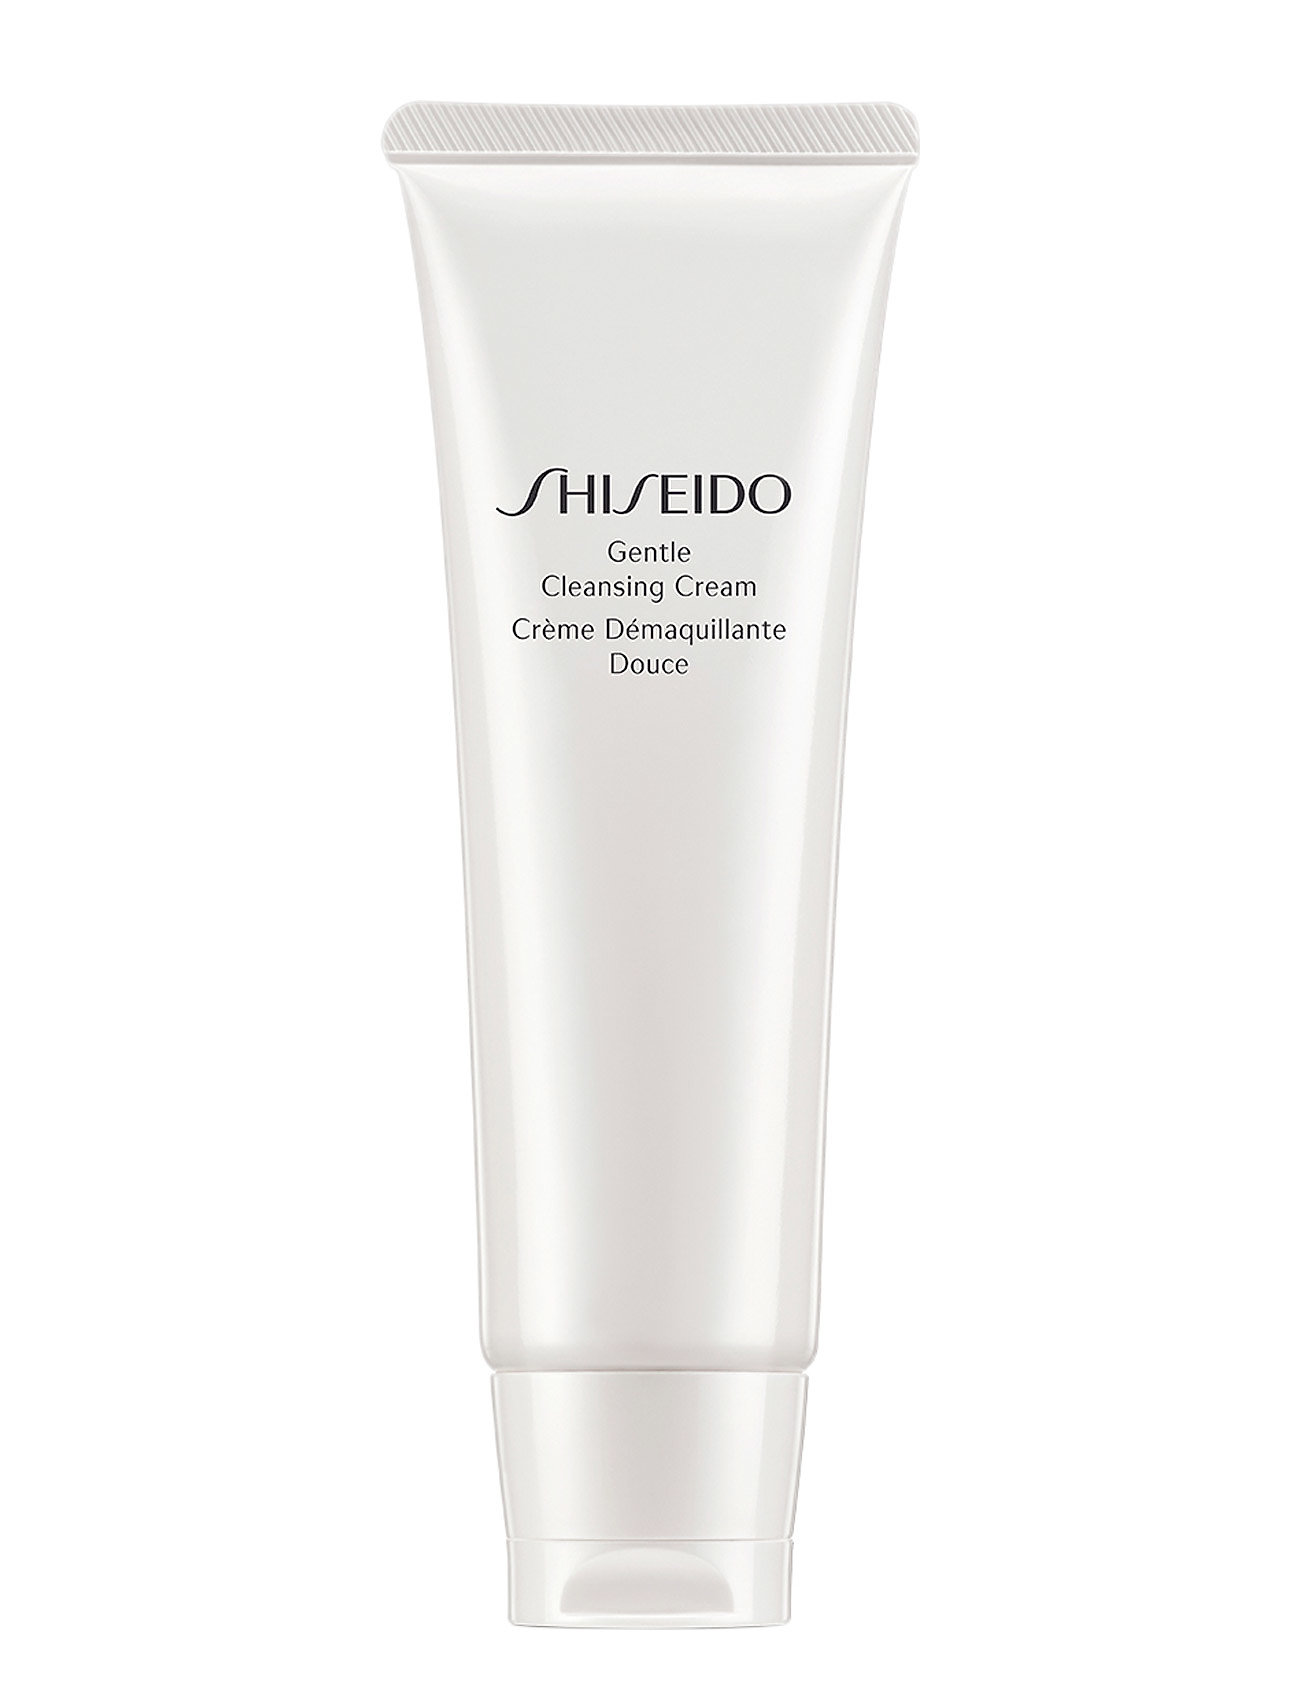 Image of Generic Skincare Gentle Cleansing Cream Beauty WOMEN Skin Care Face Cleansers Cleansing Gel Shiseido (3290843575)